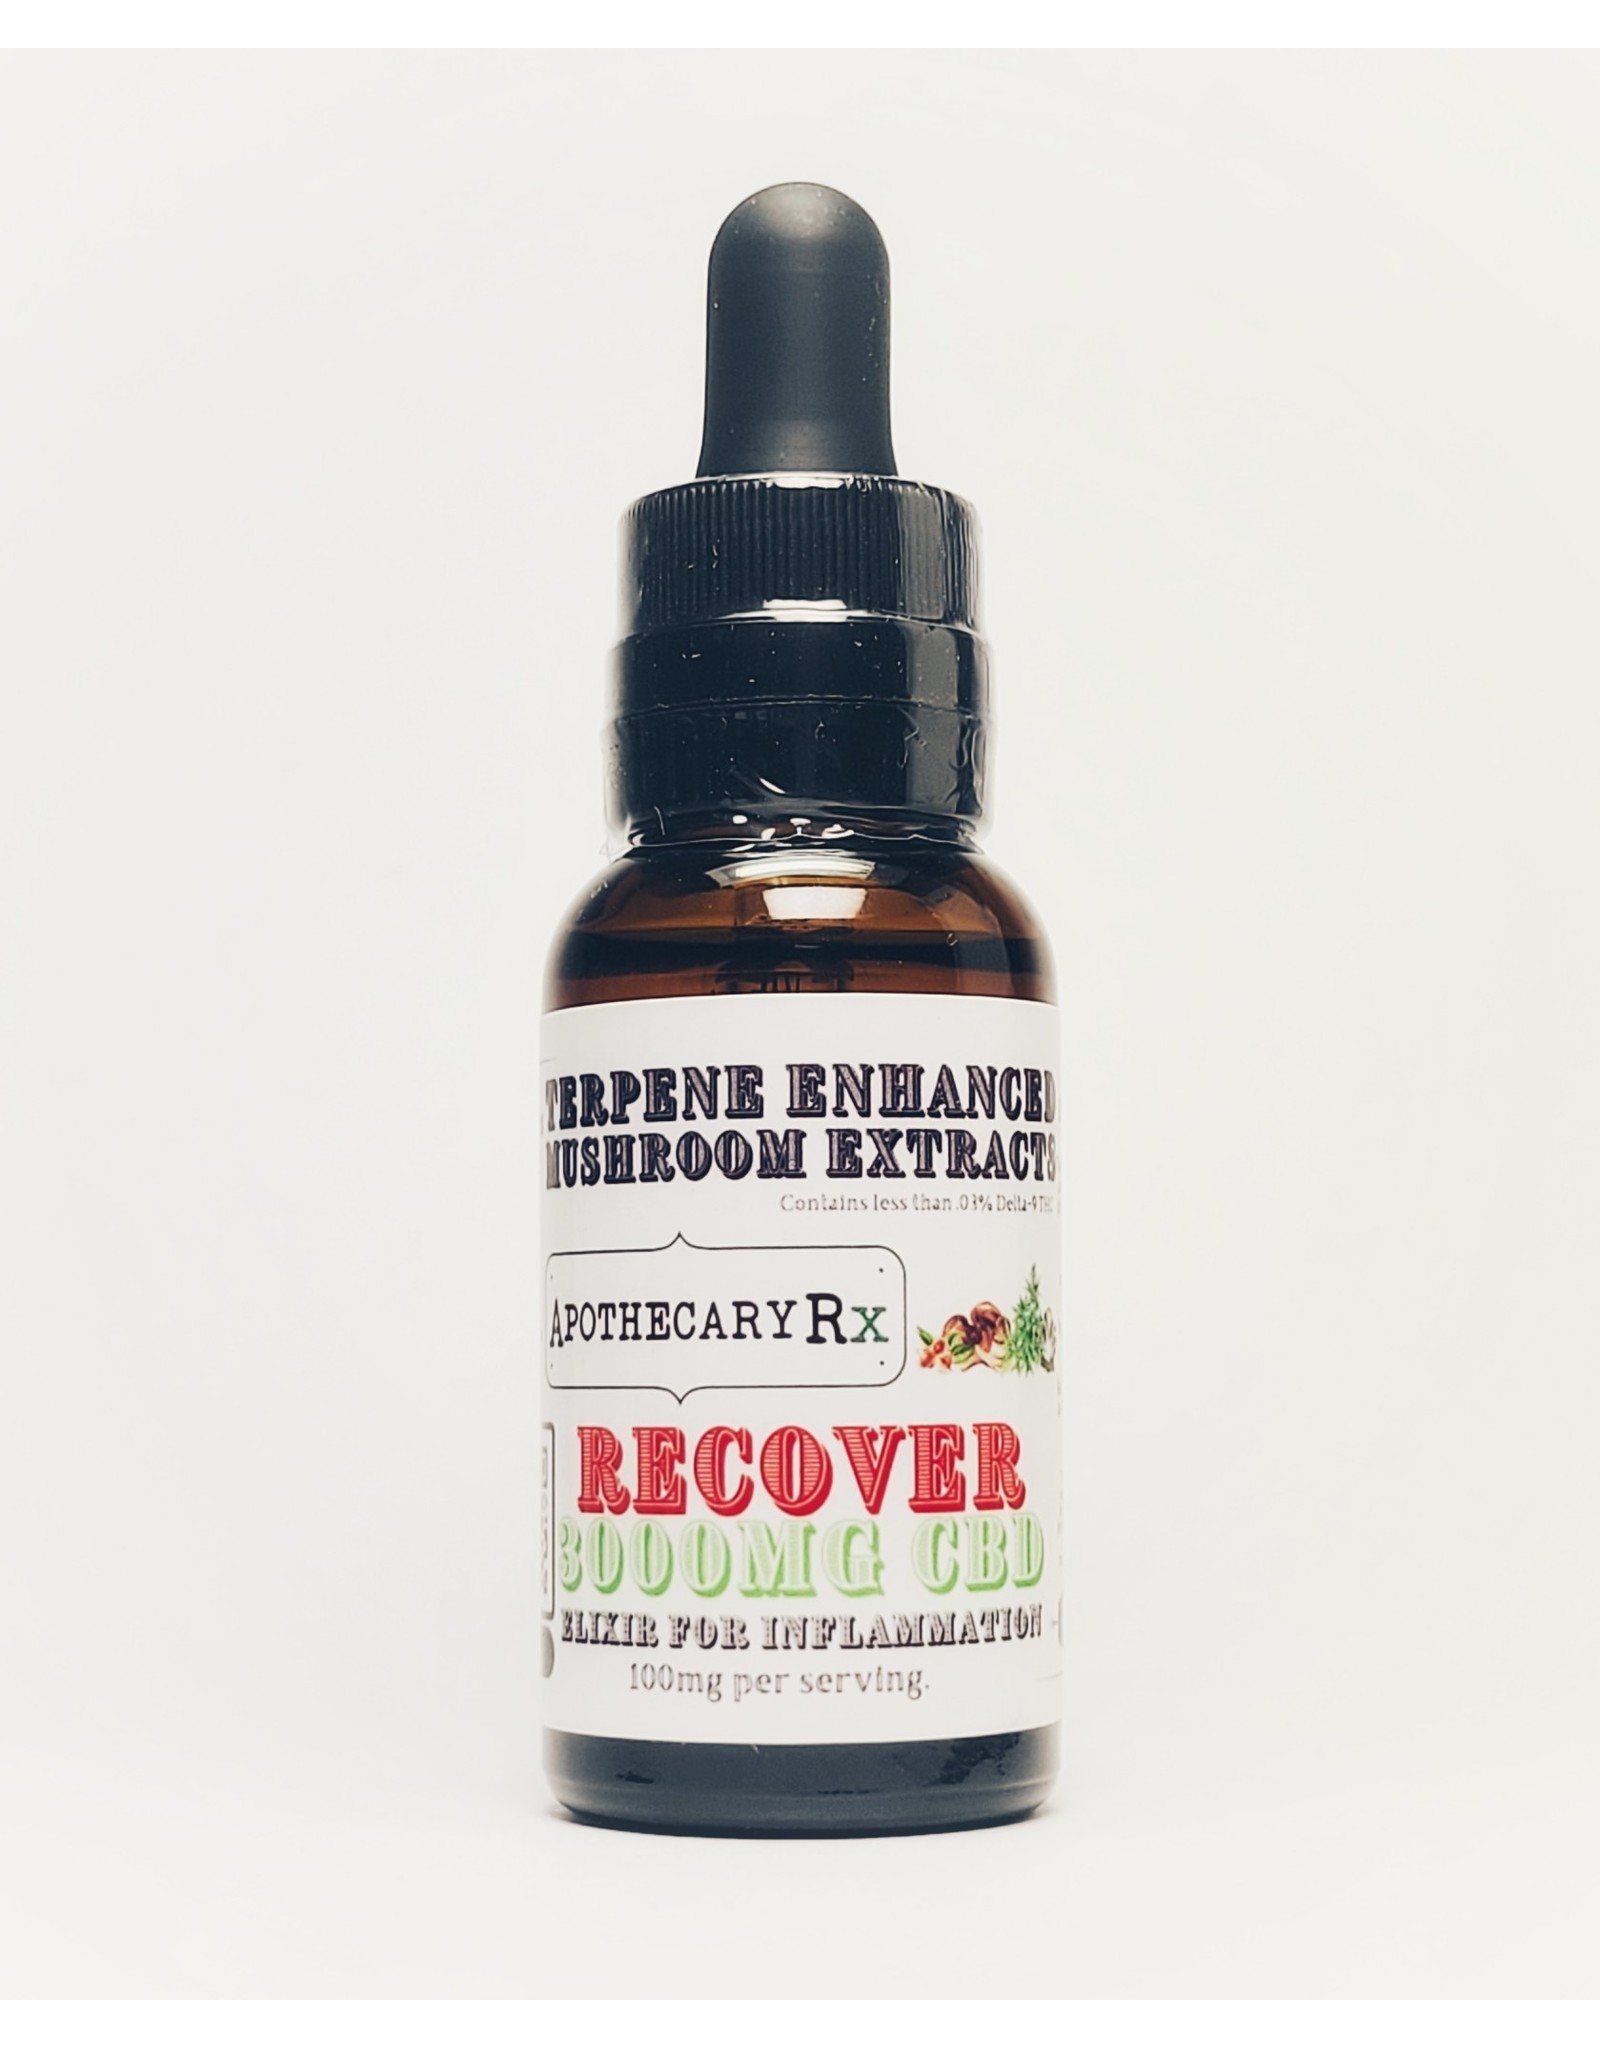 Apothecary Rx Apothecary Rx RECOVER Elixir for Inflammation 3000mg Full Spectrum